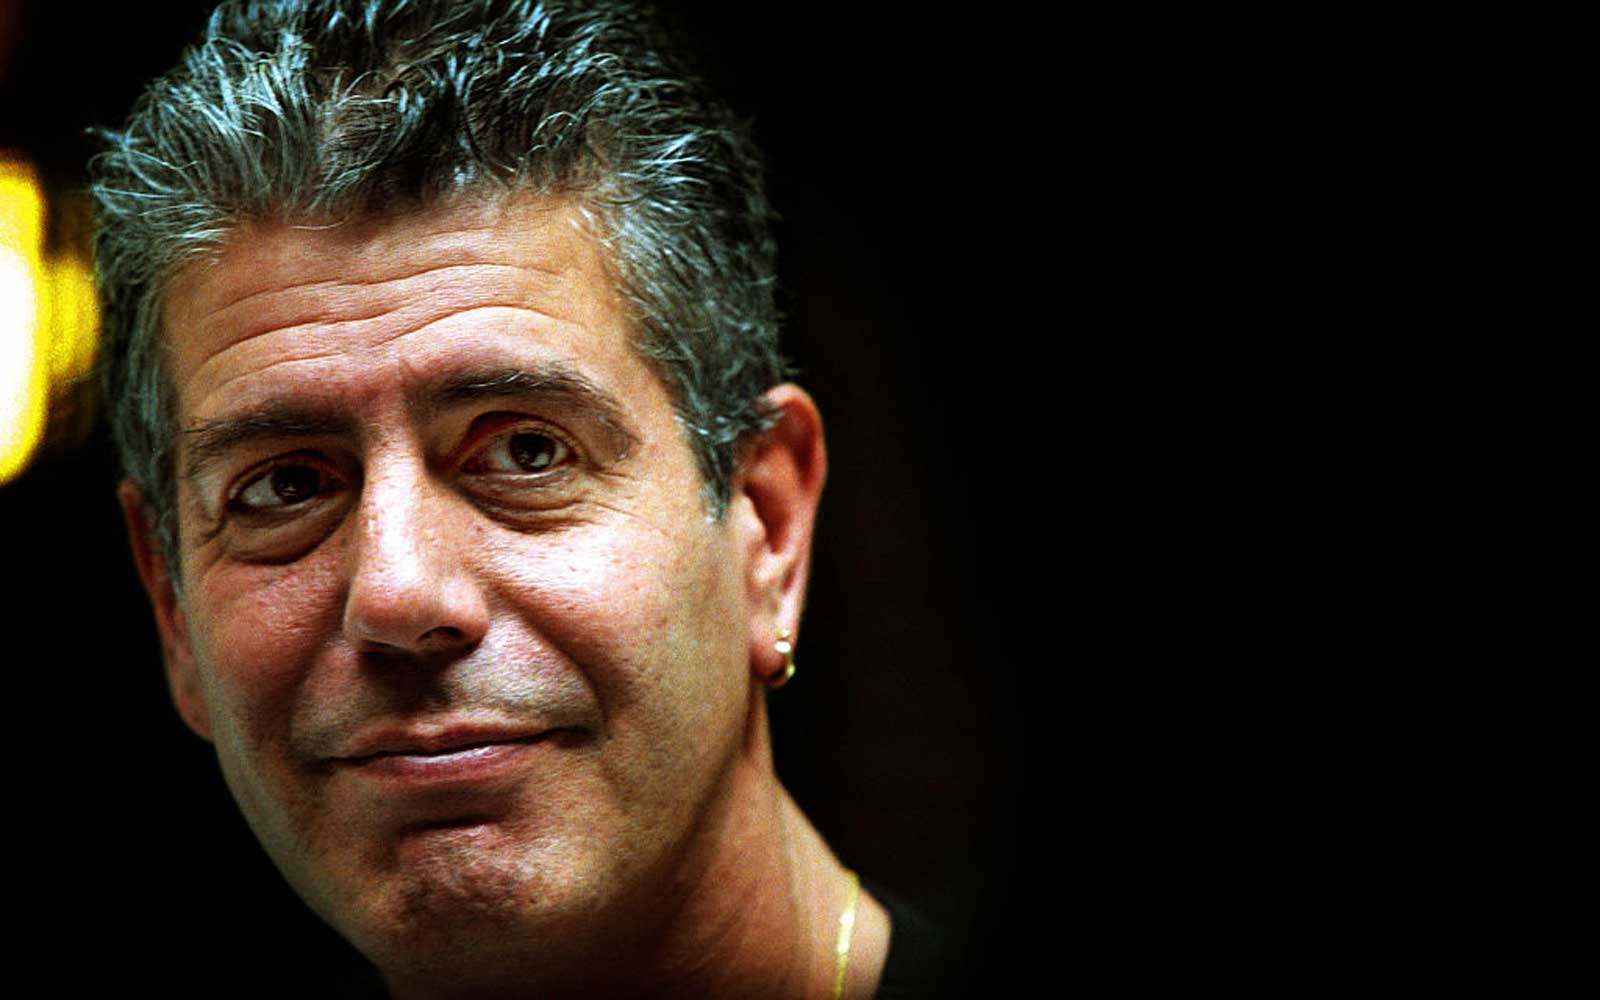 An Anthony Bourdain Biography Is Coming and It'll Be Full of Stories From His Closest Friends